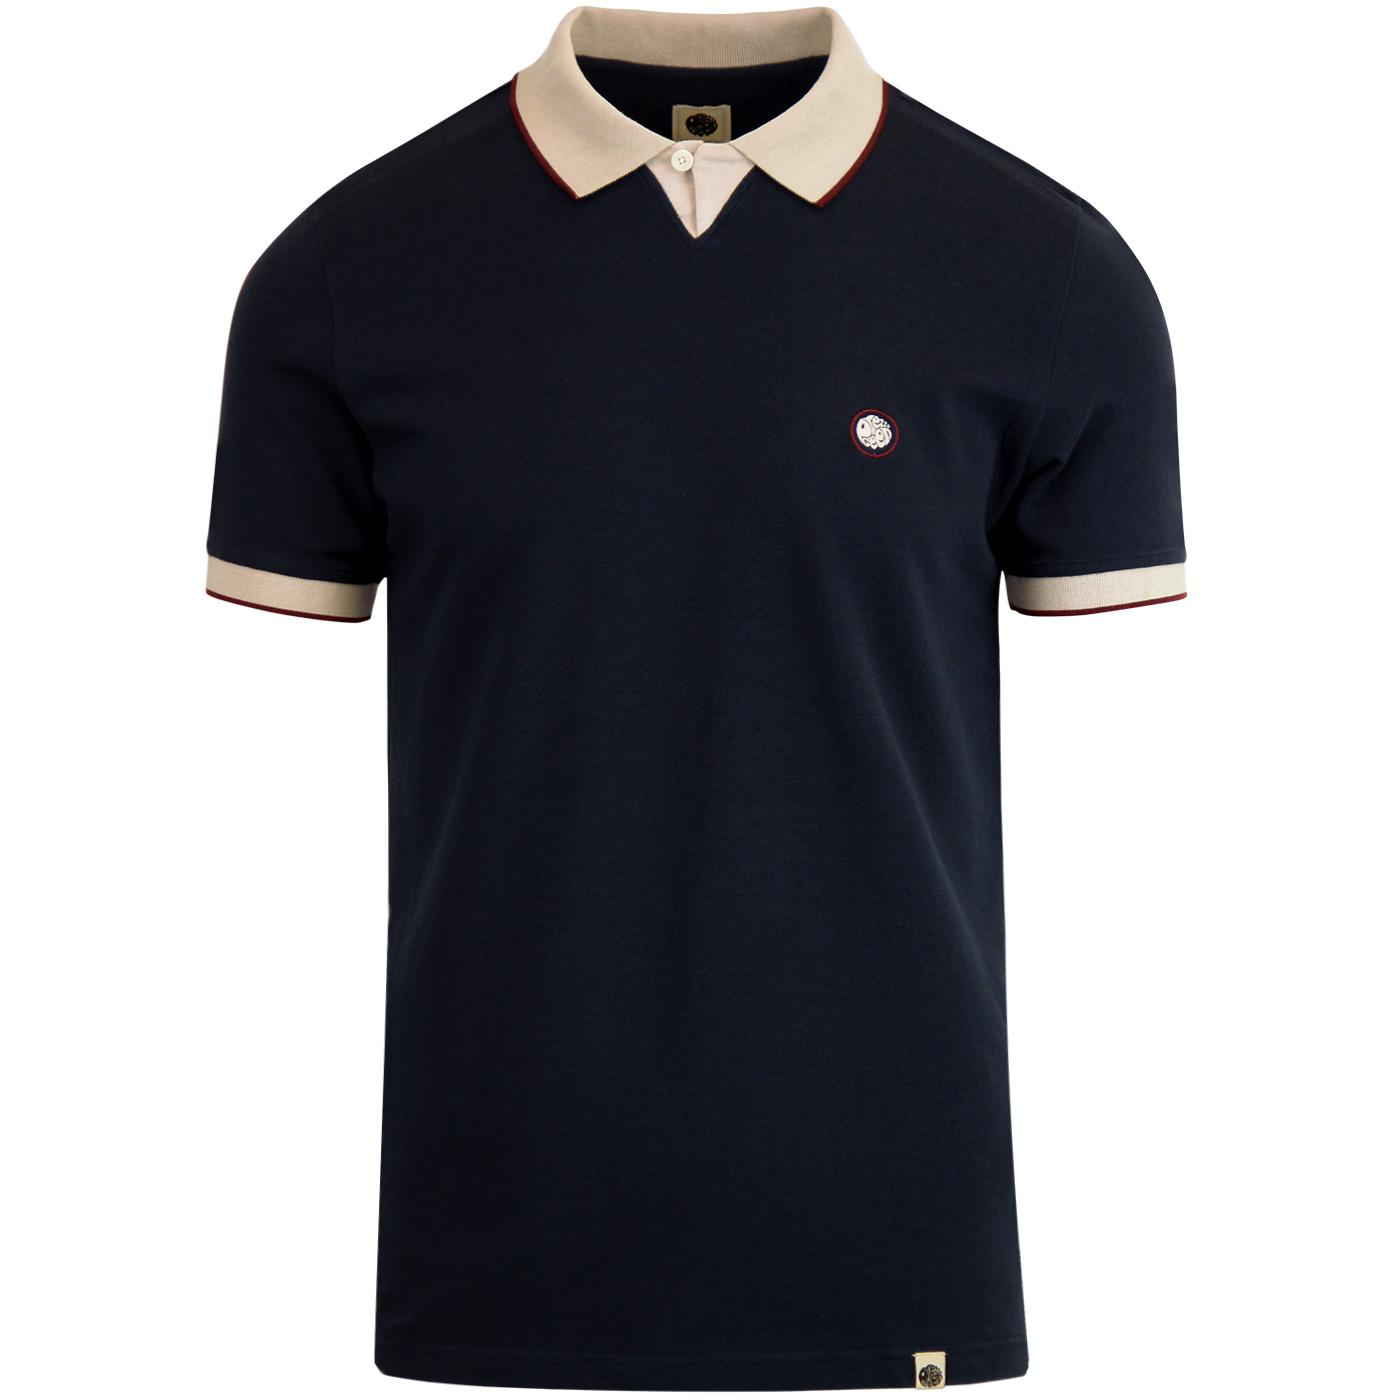 Silverdale PRETTY GREEN Retro Sports Collar Polo N